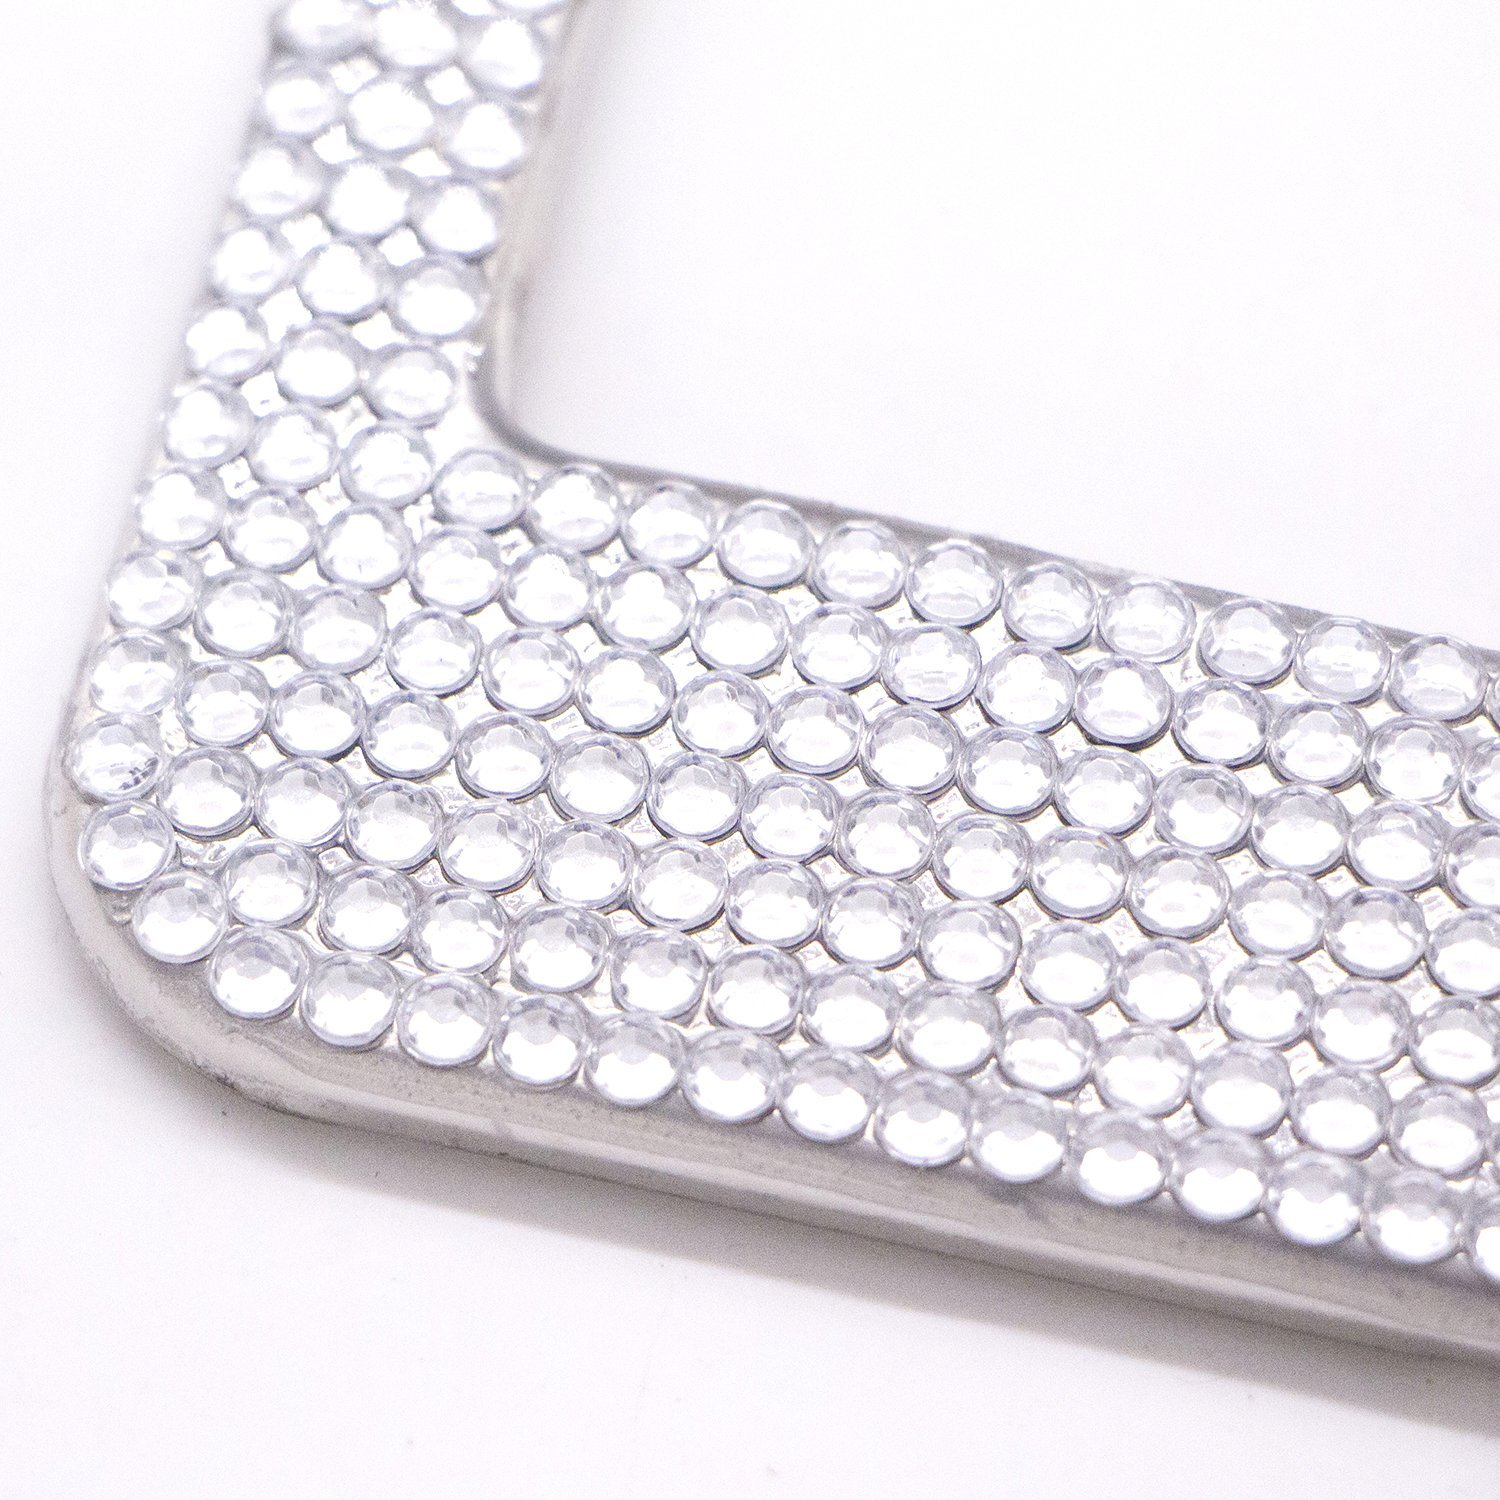 2PCS Bling Rhinestone Car License Plate Frames Holders with 7 Shiny Sparkling Crystal Rows Metal Chrome Auto License Plate Cover with Mounting Screws,Lips TooCust Diamond License Plate Frame